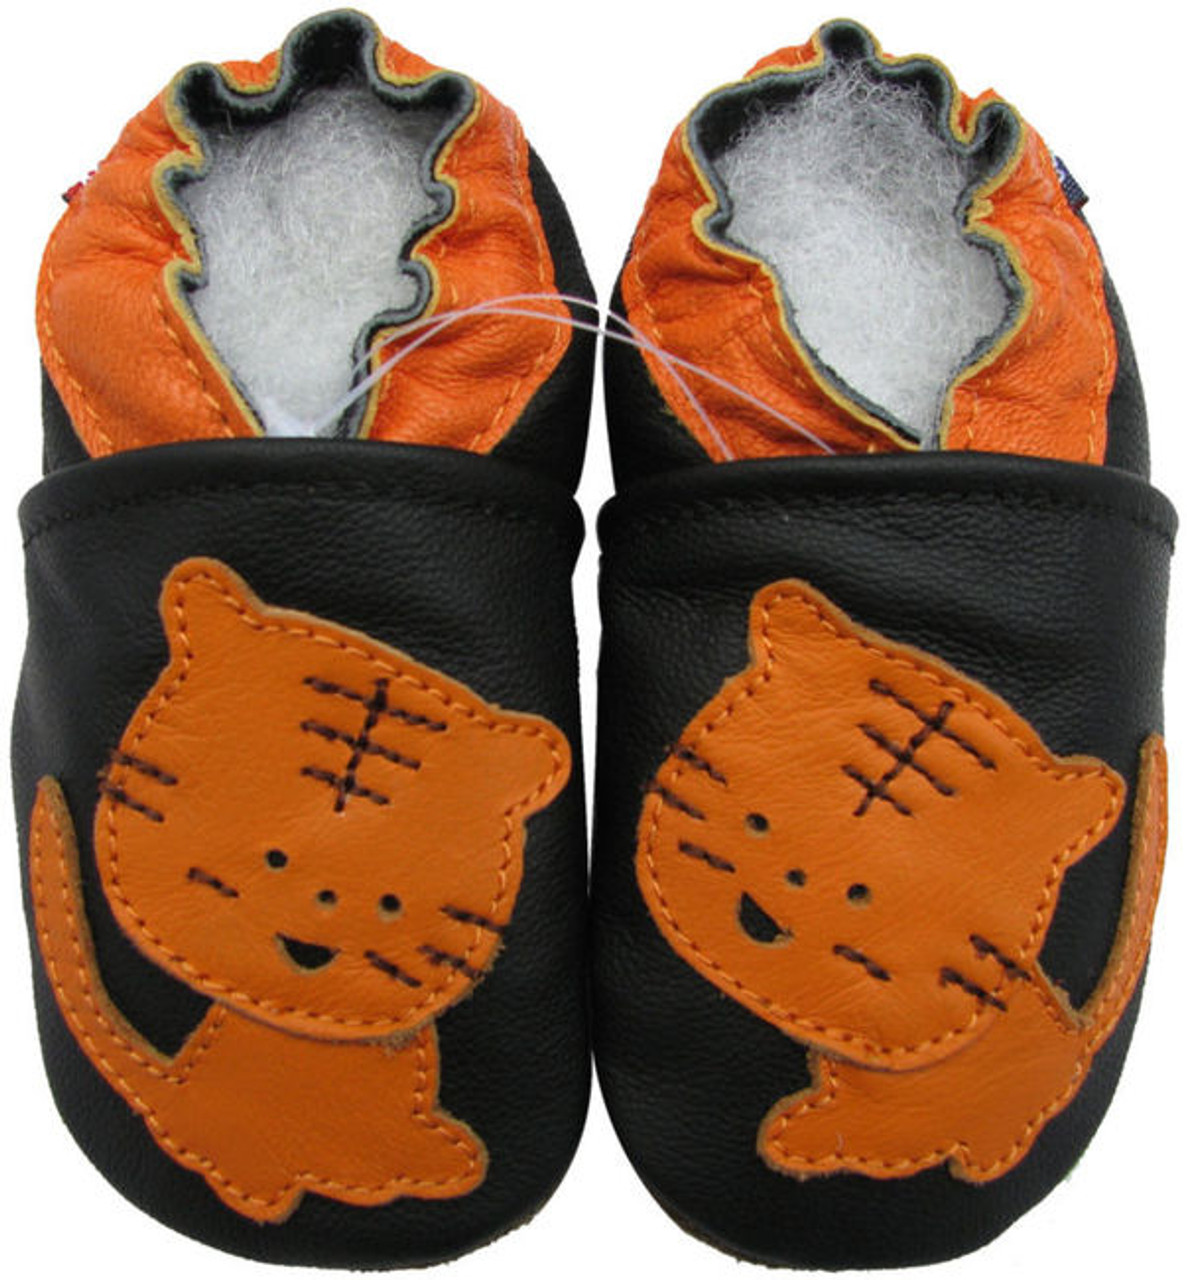 Carozoo Baby boy Soft Sole Leather Infant Toddler Kids Shoes Sandals Black